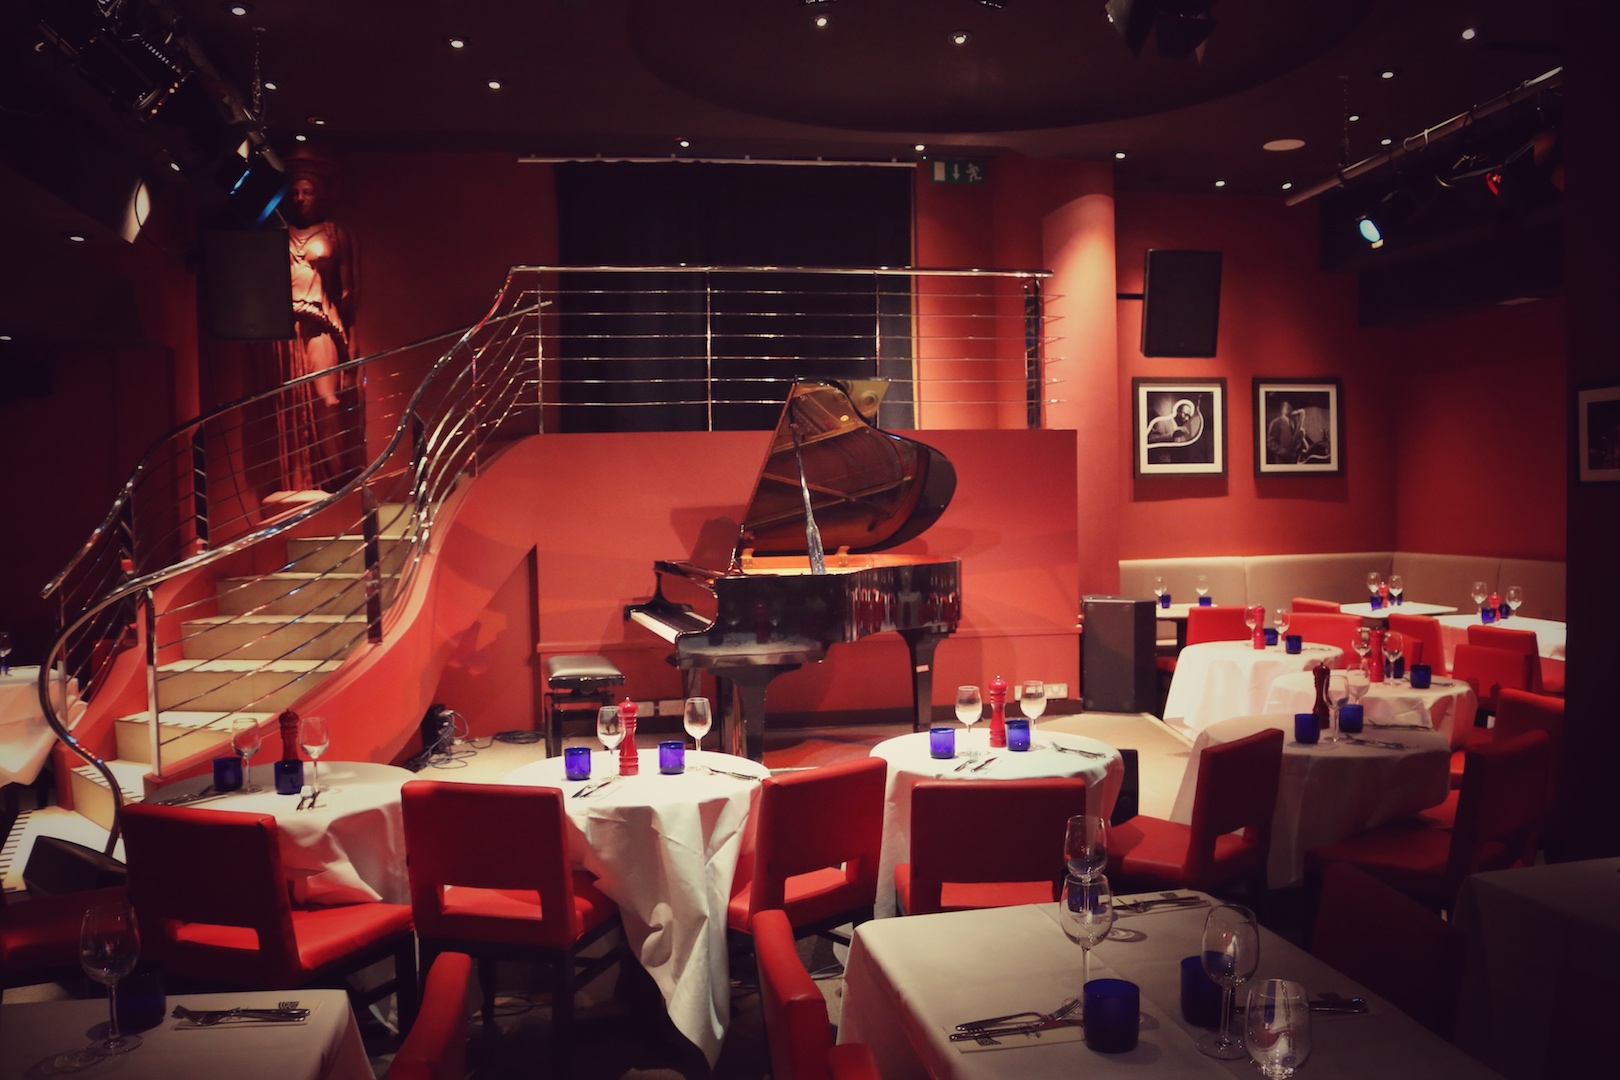 Interior shots of The Pheasantry Pizza Express, in Chelsea.